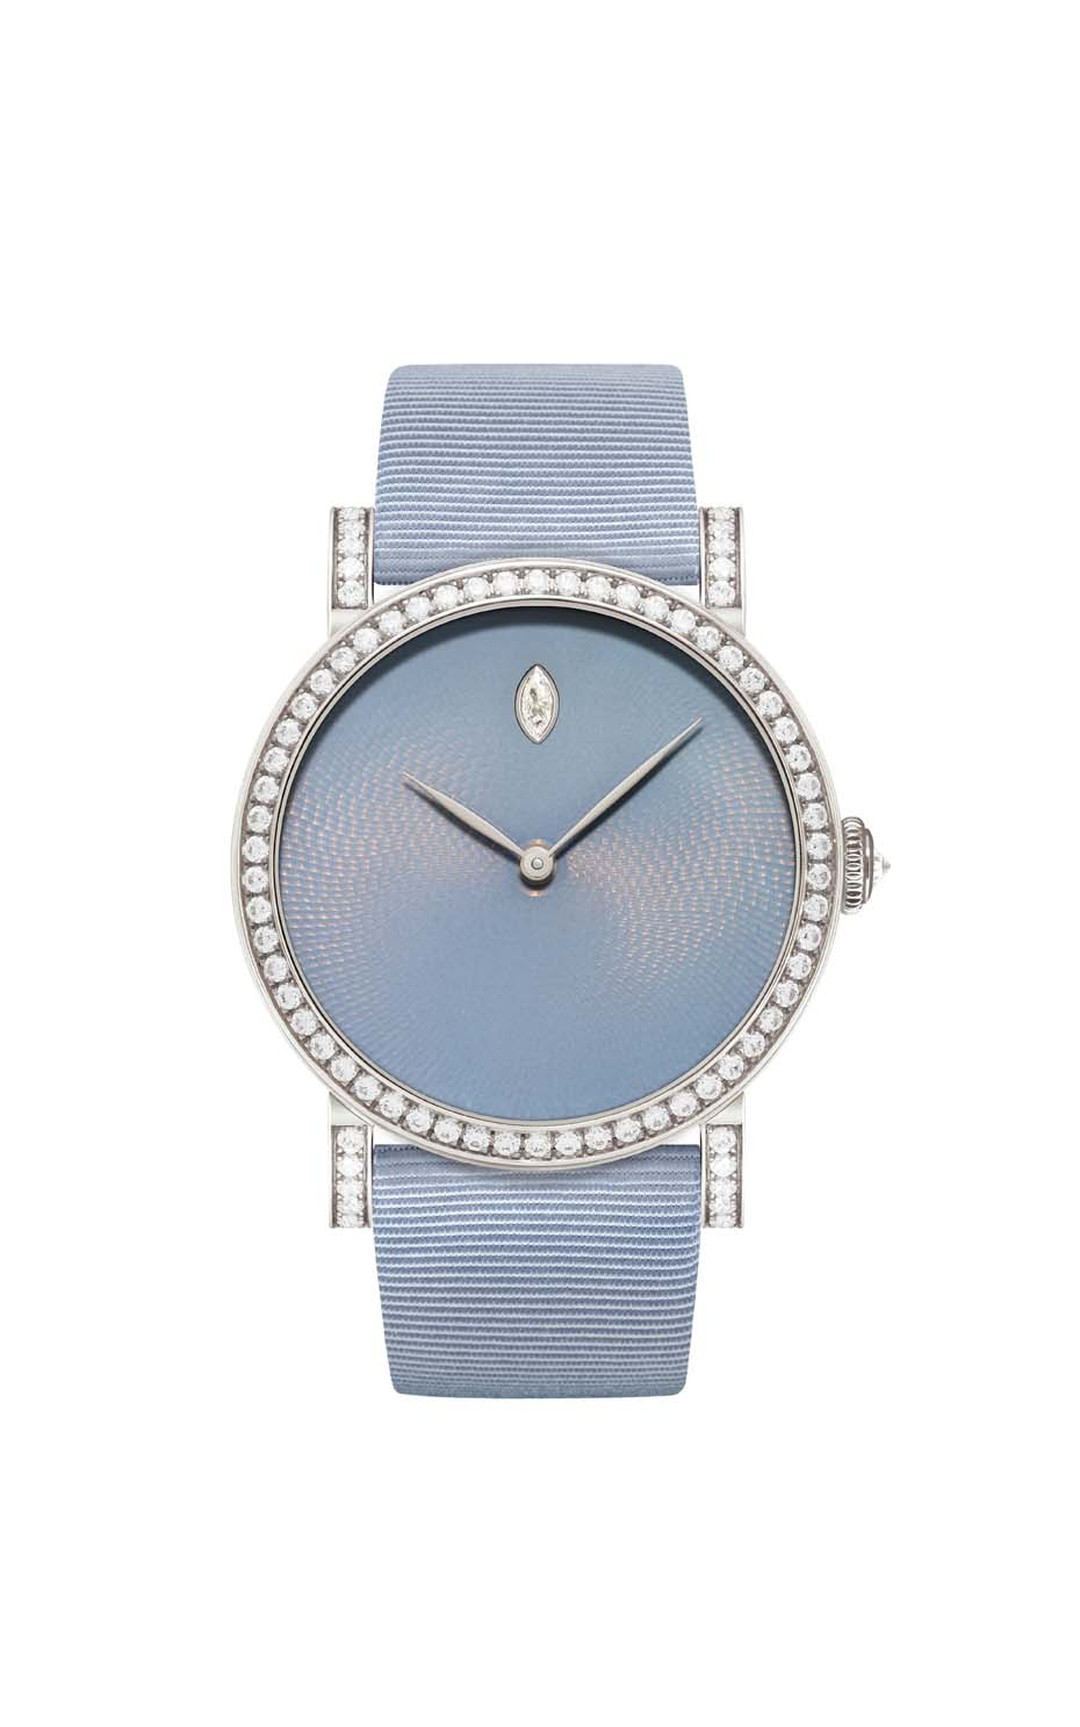 DeLaneau Rondo Translucent Hoar Frost watch with a guilloché enamel dial and diamond-set bezel